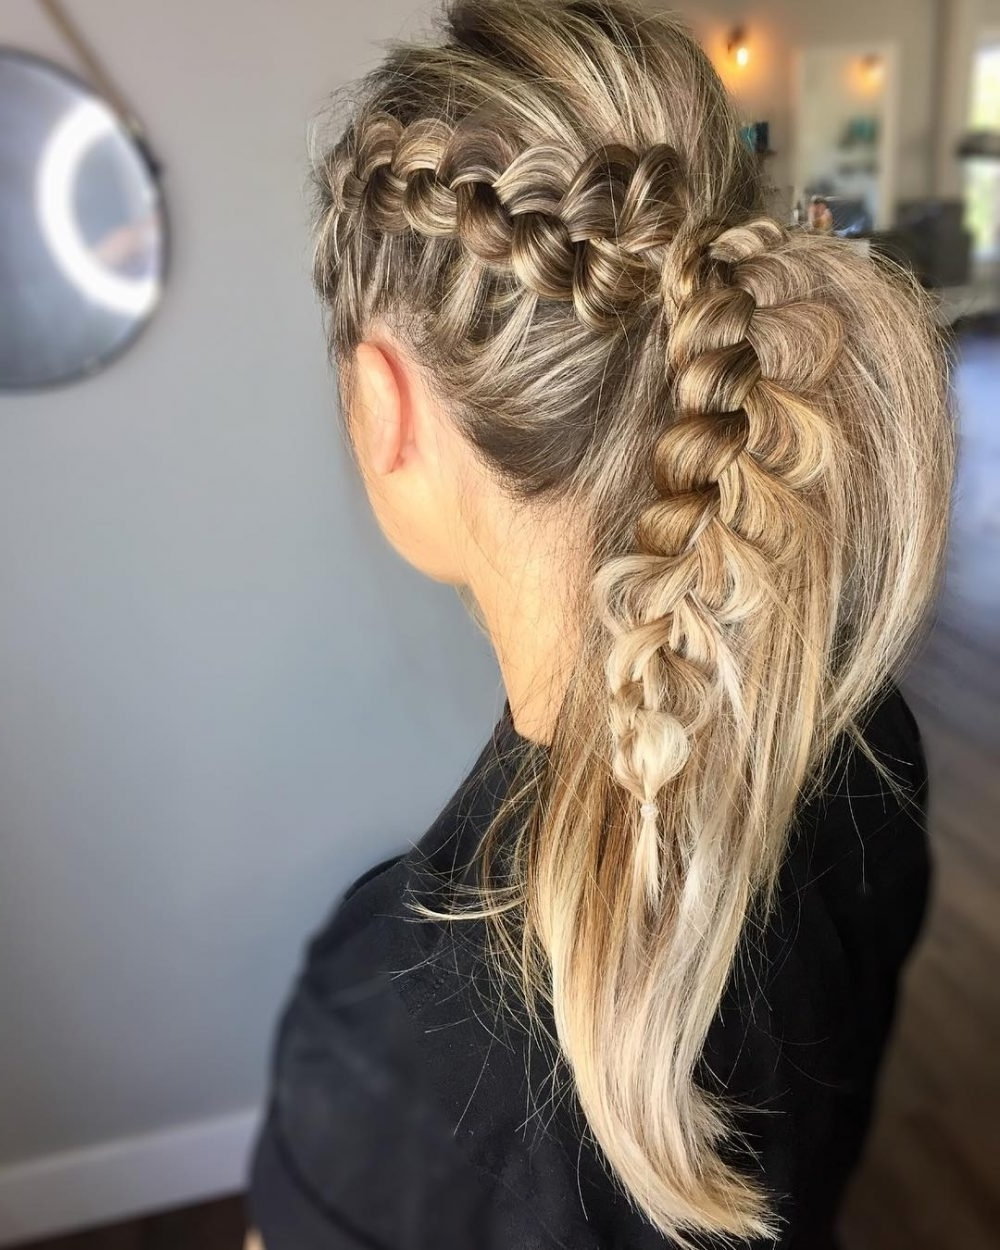 38 Ridiculously Cute Hairstyles For Long Hair (Popular In 2018) Intended For Newest Two Toned Pony Hairstyles For Fine Hair (View 8 of 20)